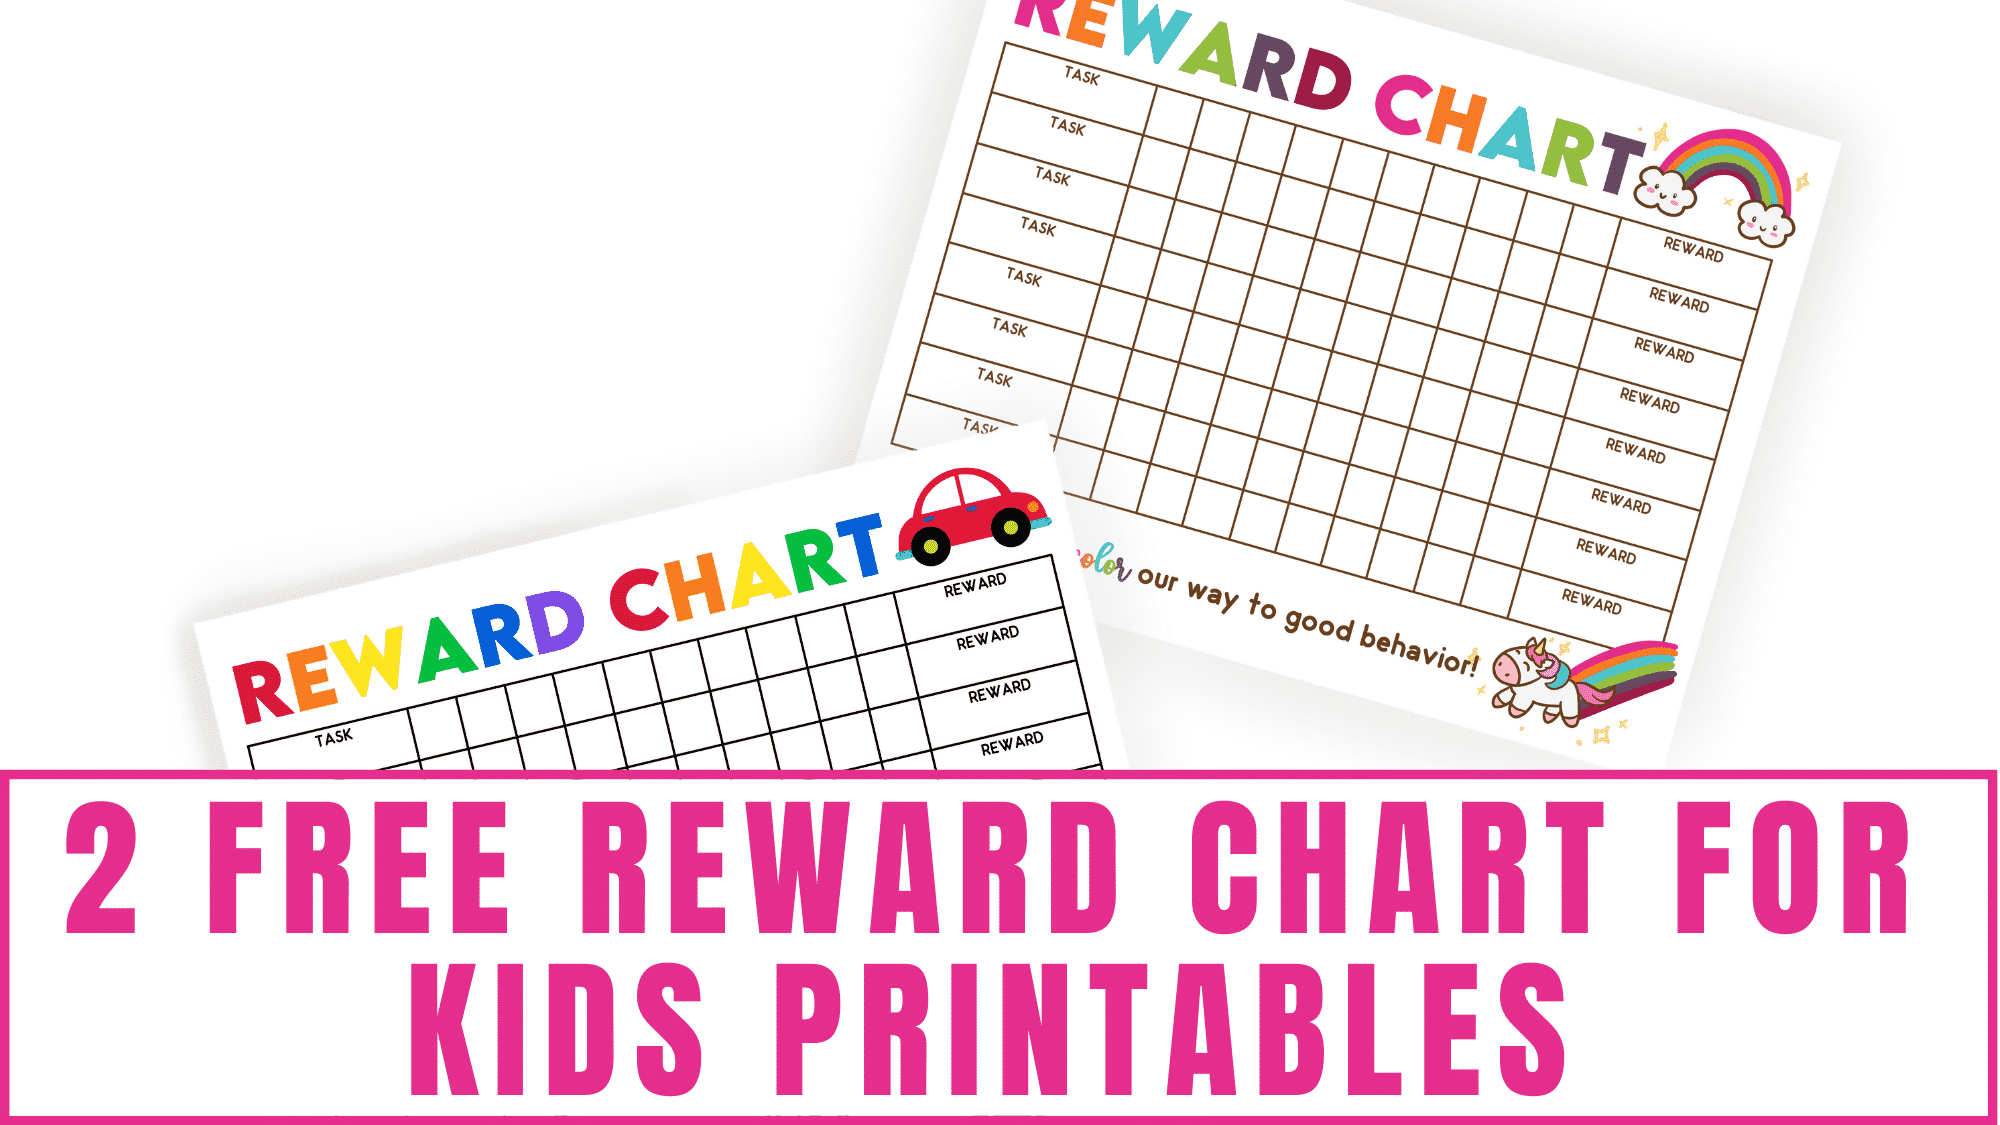 Make household chores more fun by using these free reward chart for kids printables.